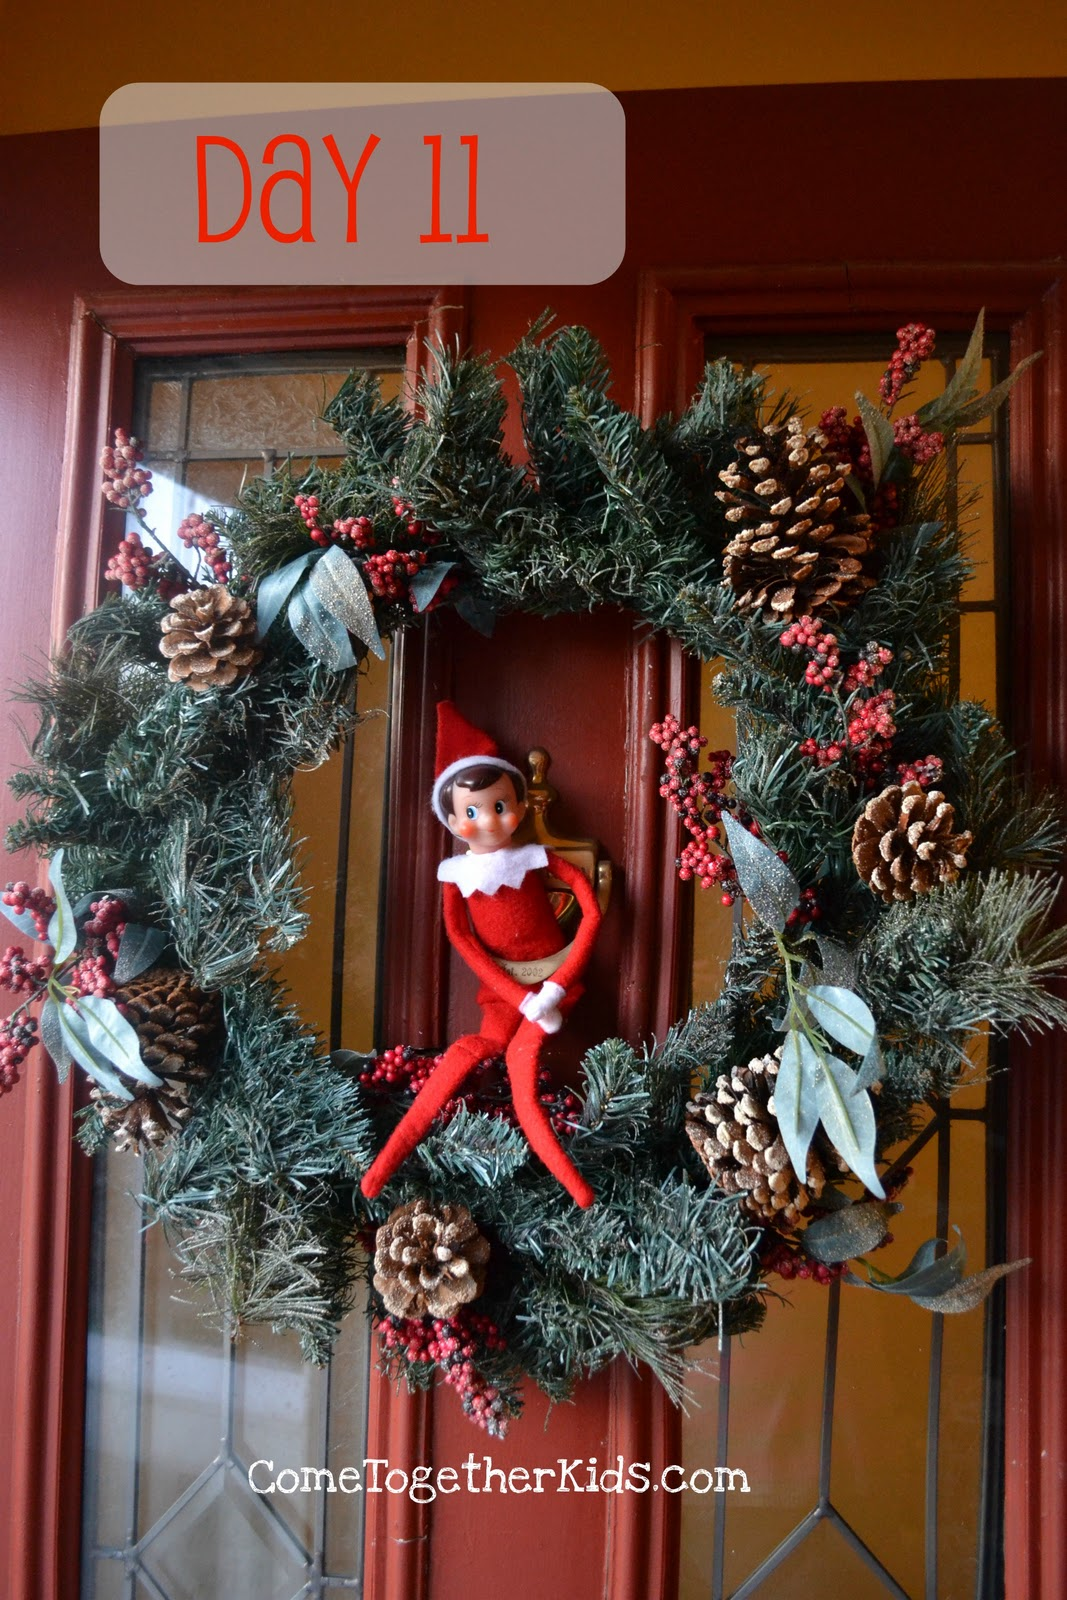 Come together kids elf on the shelf ideas week 2 for 12 days of christmas door decoration